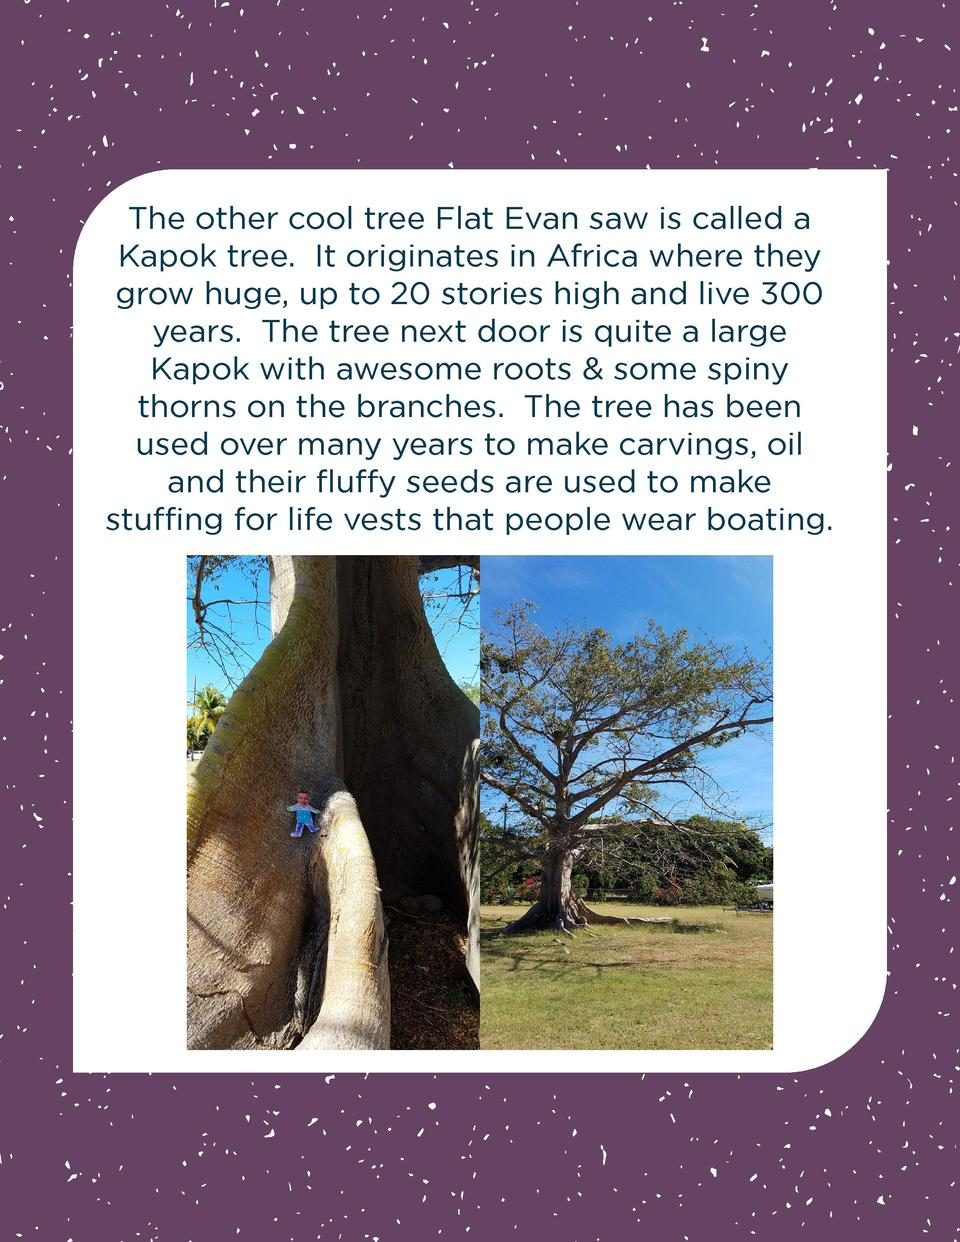 The other cool tree Flat Evan saw is called a Kapok tree. It originates in Africa where they grow huge, up to 20 stories h...